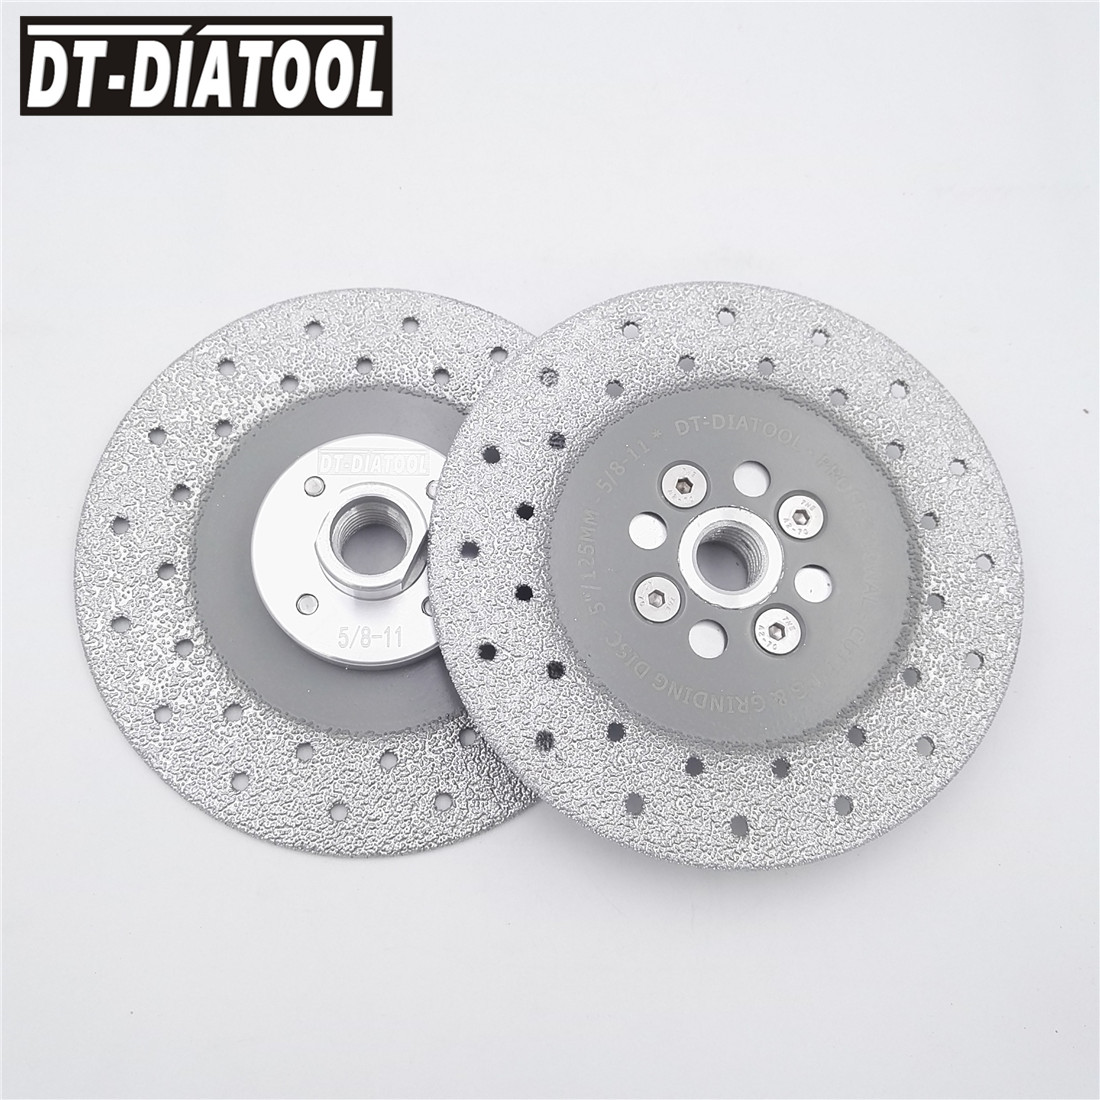 2pcs/units 5 Double Sided Vacuum Brazed Diamond Cutting wheel Grinding Disc 5/8-11 Flange Diameter 125MM for Shaping stone сабвуфер автомобильный mystery mbb 252a